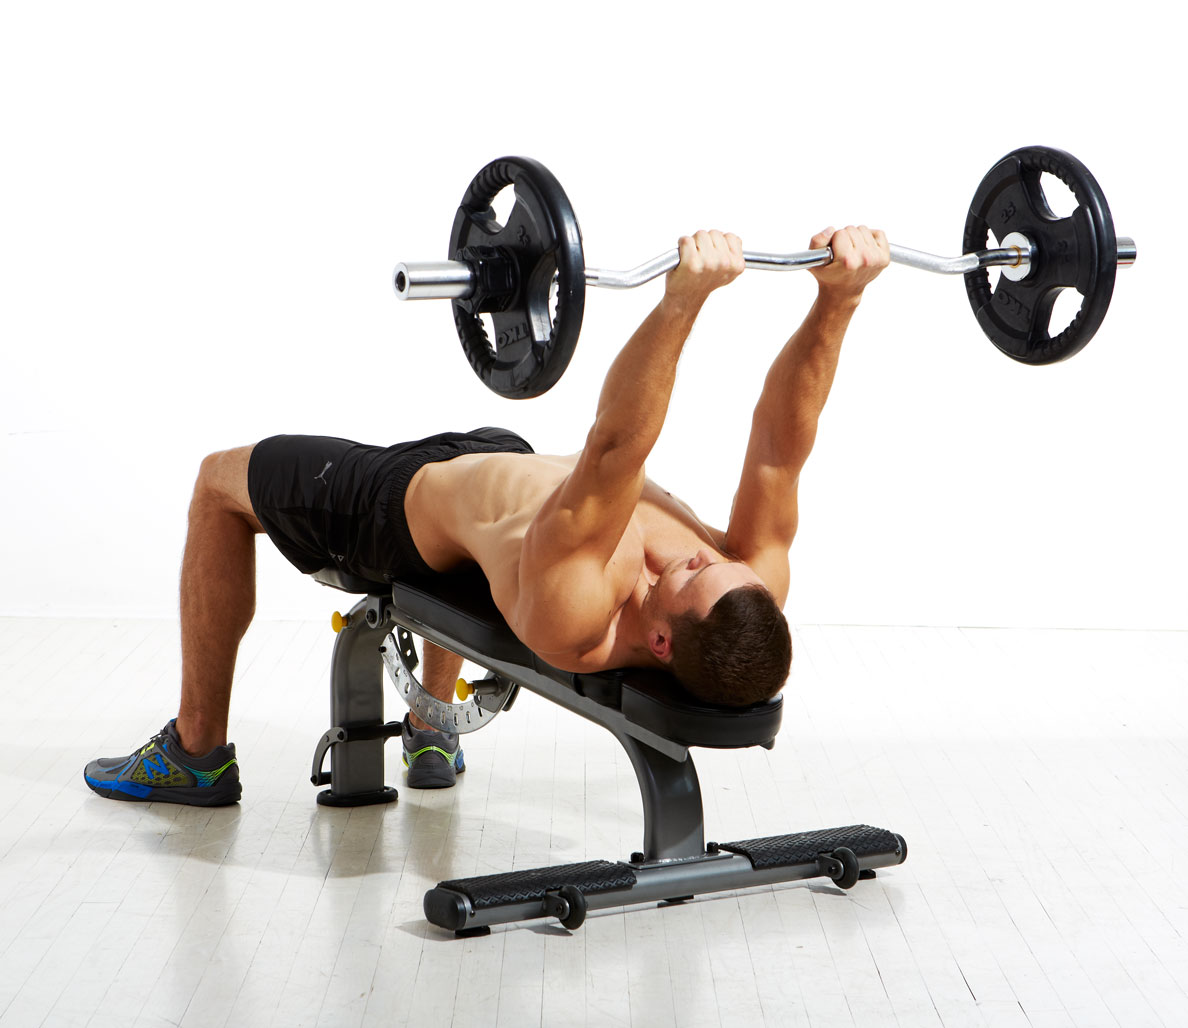 The 21-Day Shred: Chest and Triceps Workout from Day 9